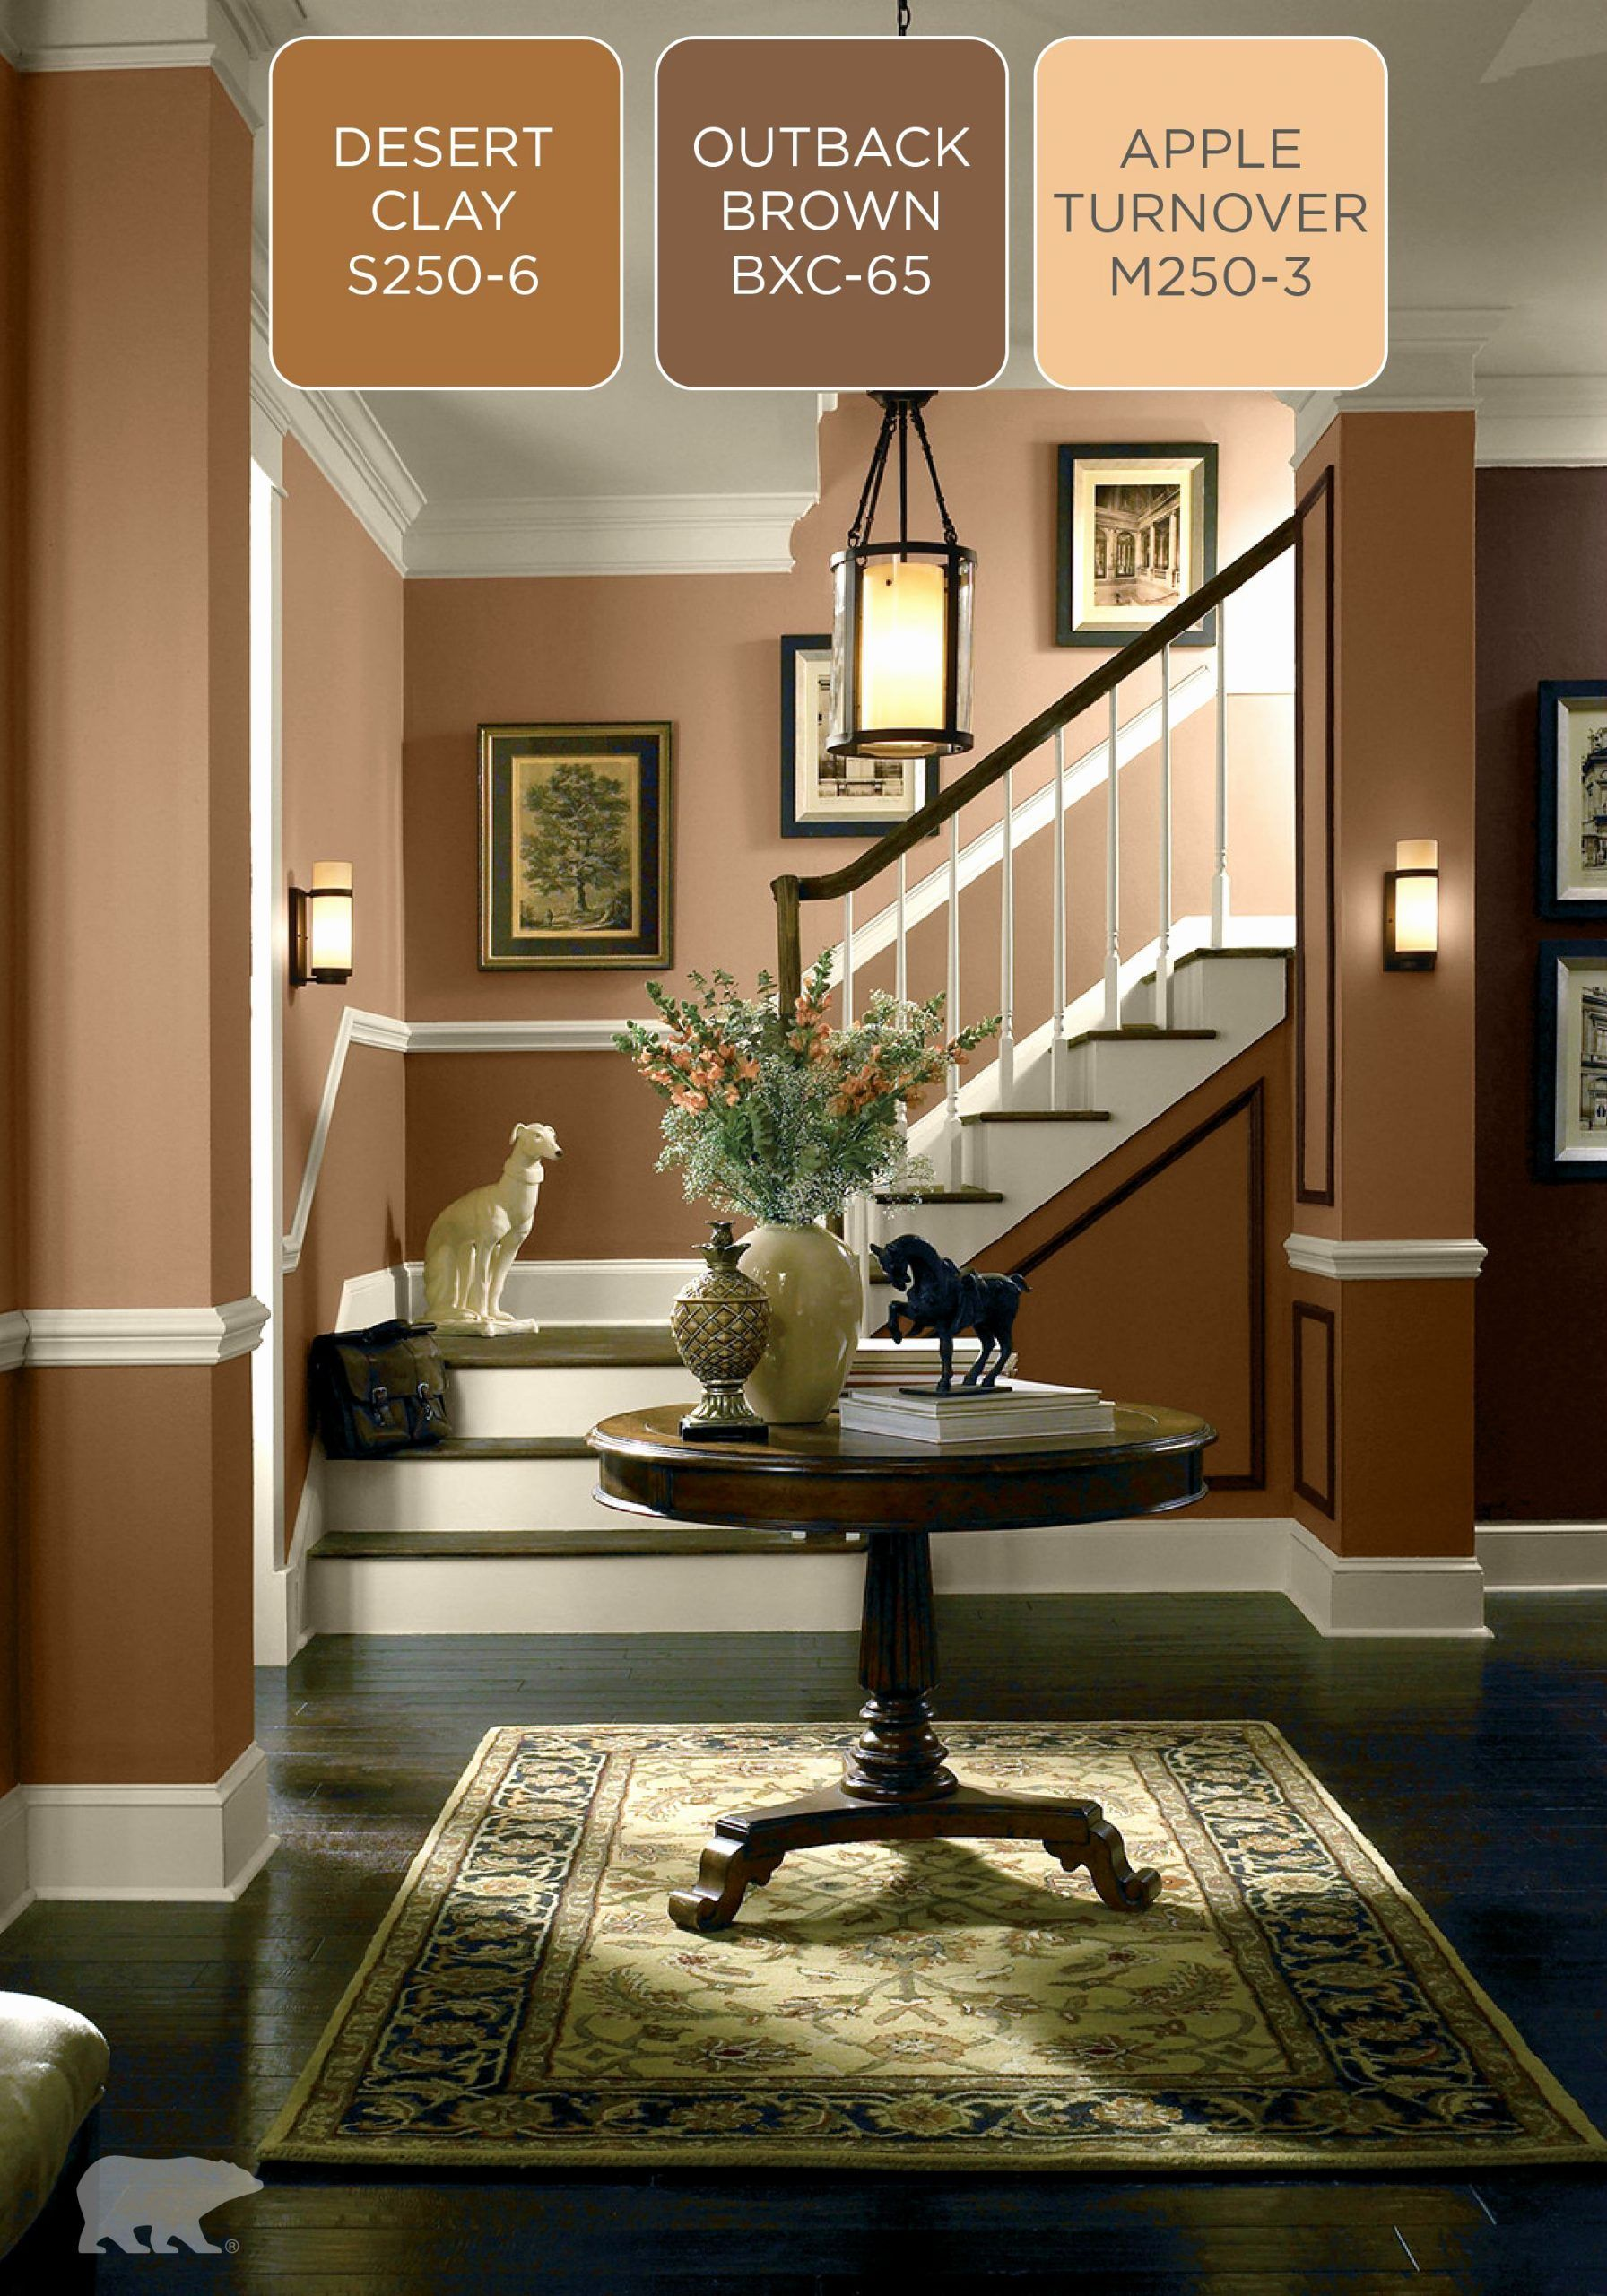 Brown Paint Colors For Living Room Best Of Find The Right Brown Hue For Your Next Home Remodel With Di 2020 Desain Rumah Rumah Desain #tuscan #paint #colors #for #living #room